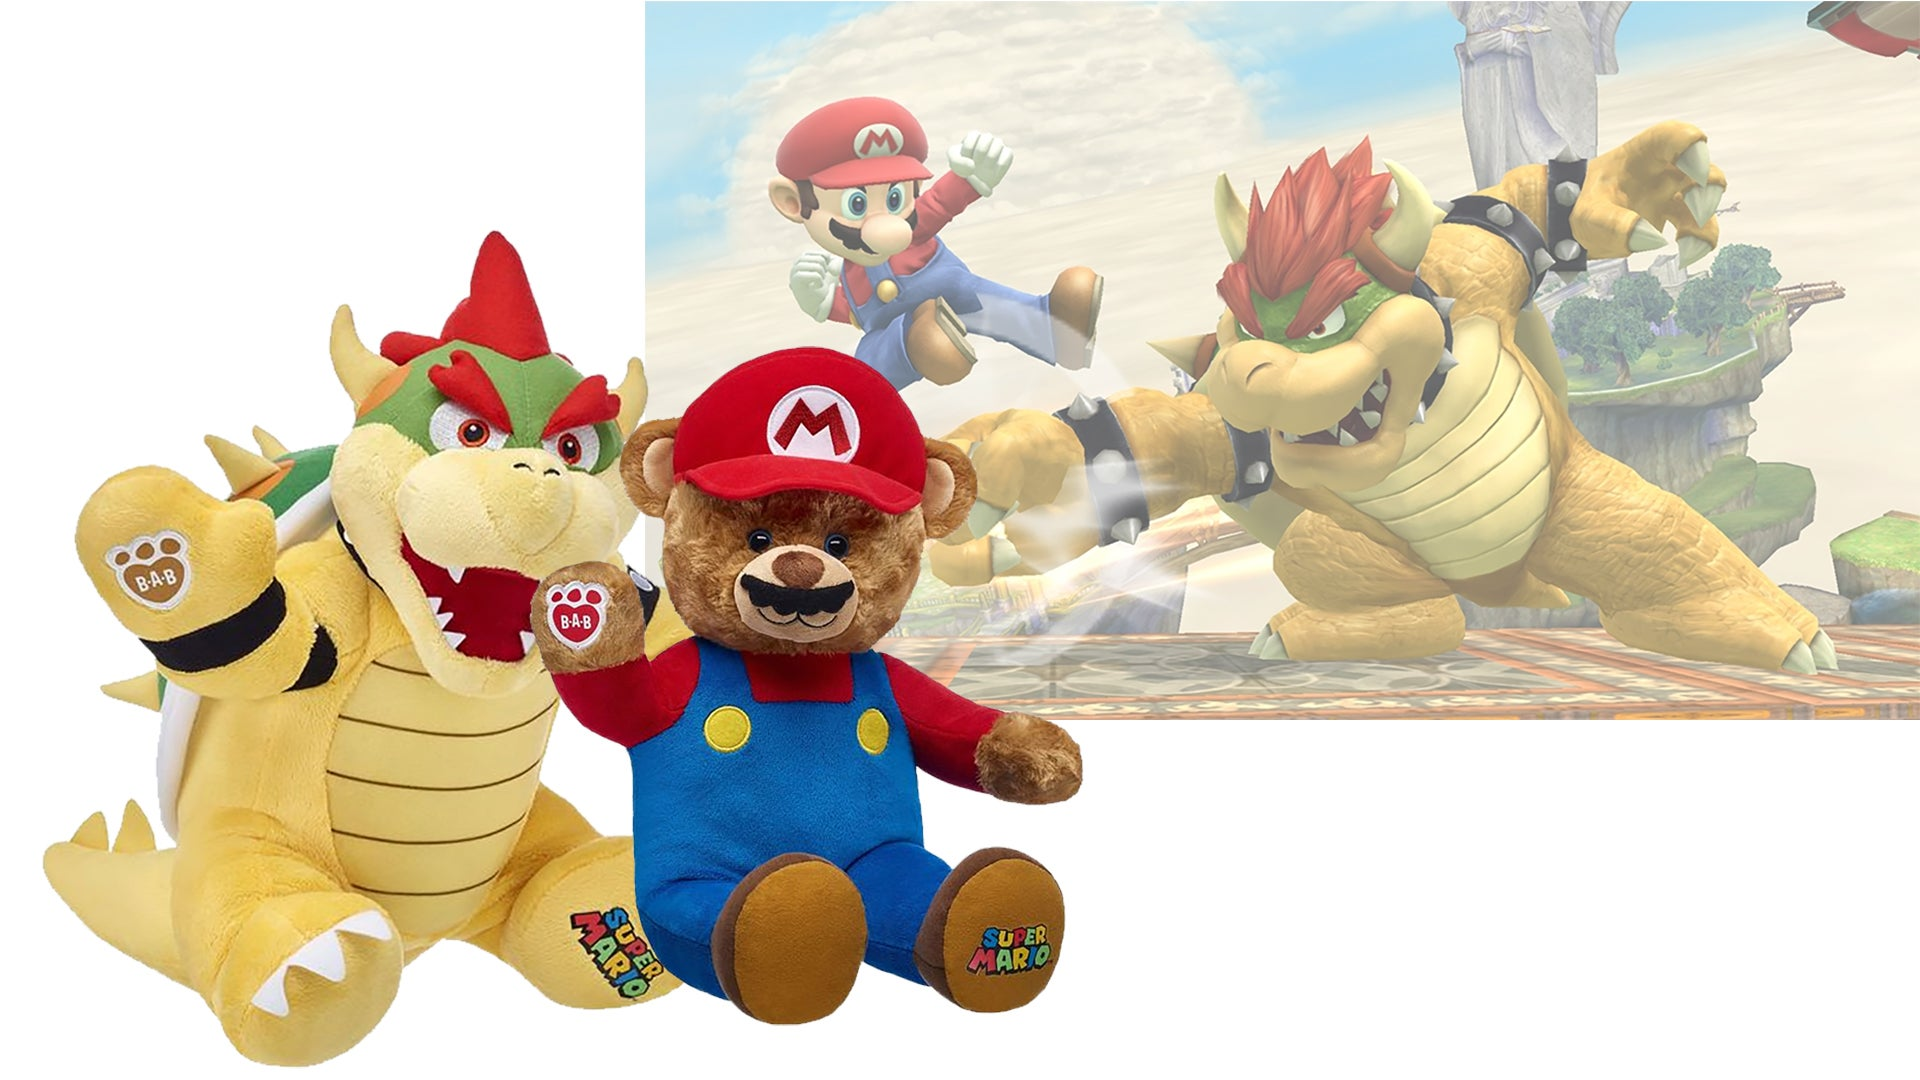 Mario And Bowser Get Along Much Better As Build-A-Bears